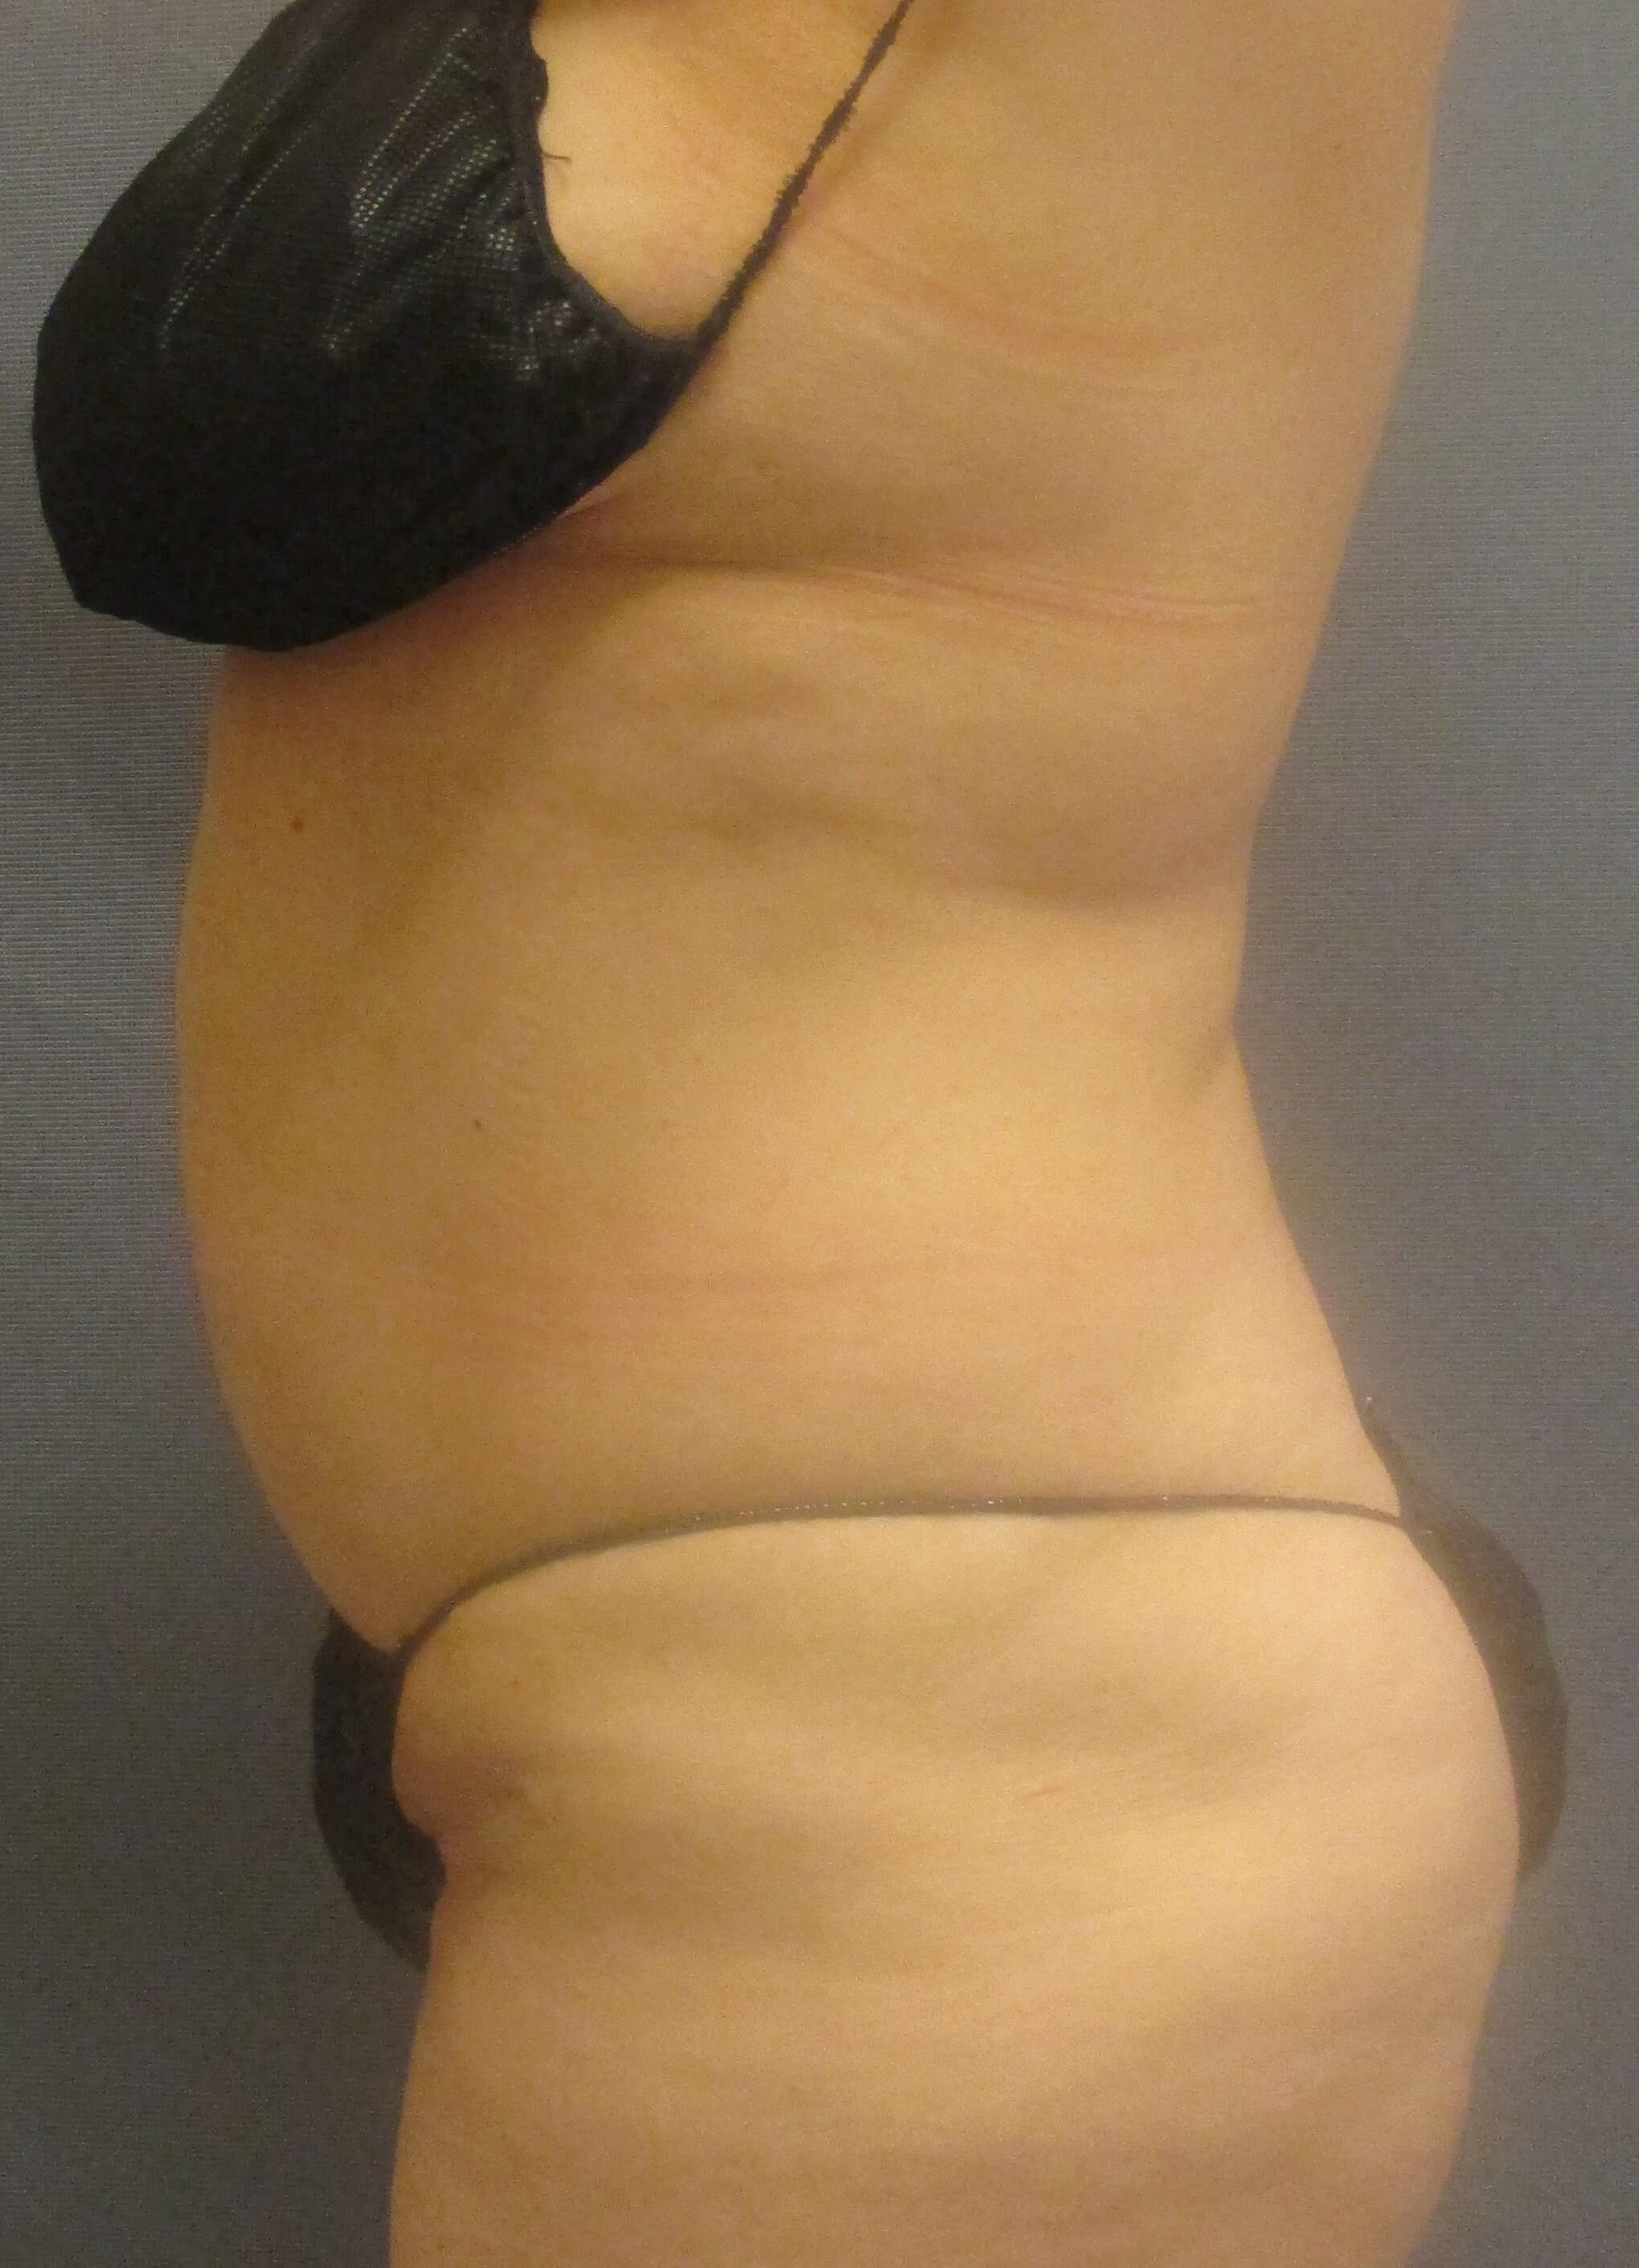 Laser Liposuction InsideLookMD 3 months after